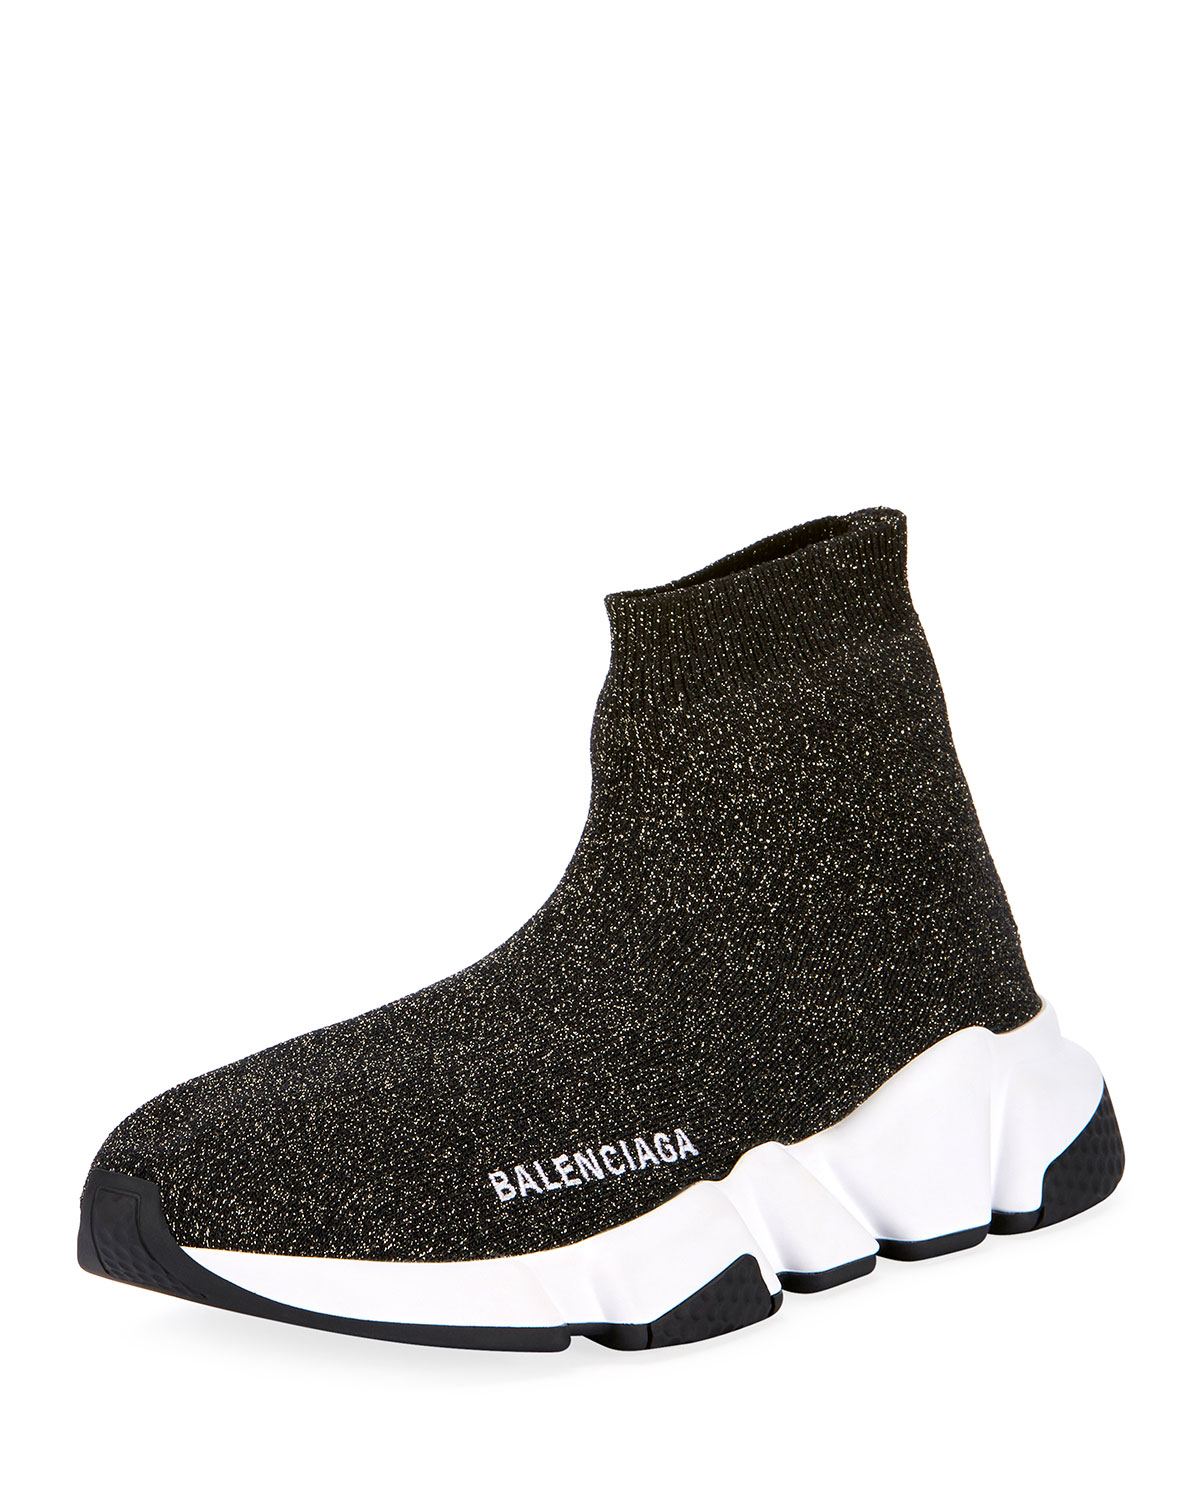 3330f8310b9 Balenciaga Metallic Knit High-Top Sock Sneakers | Neiman Marcus